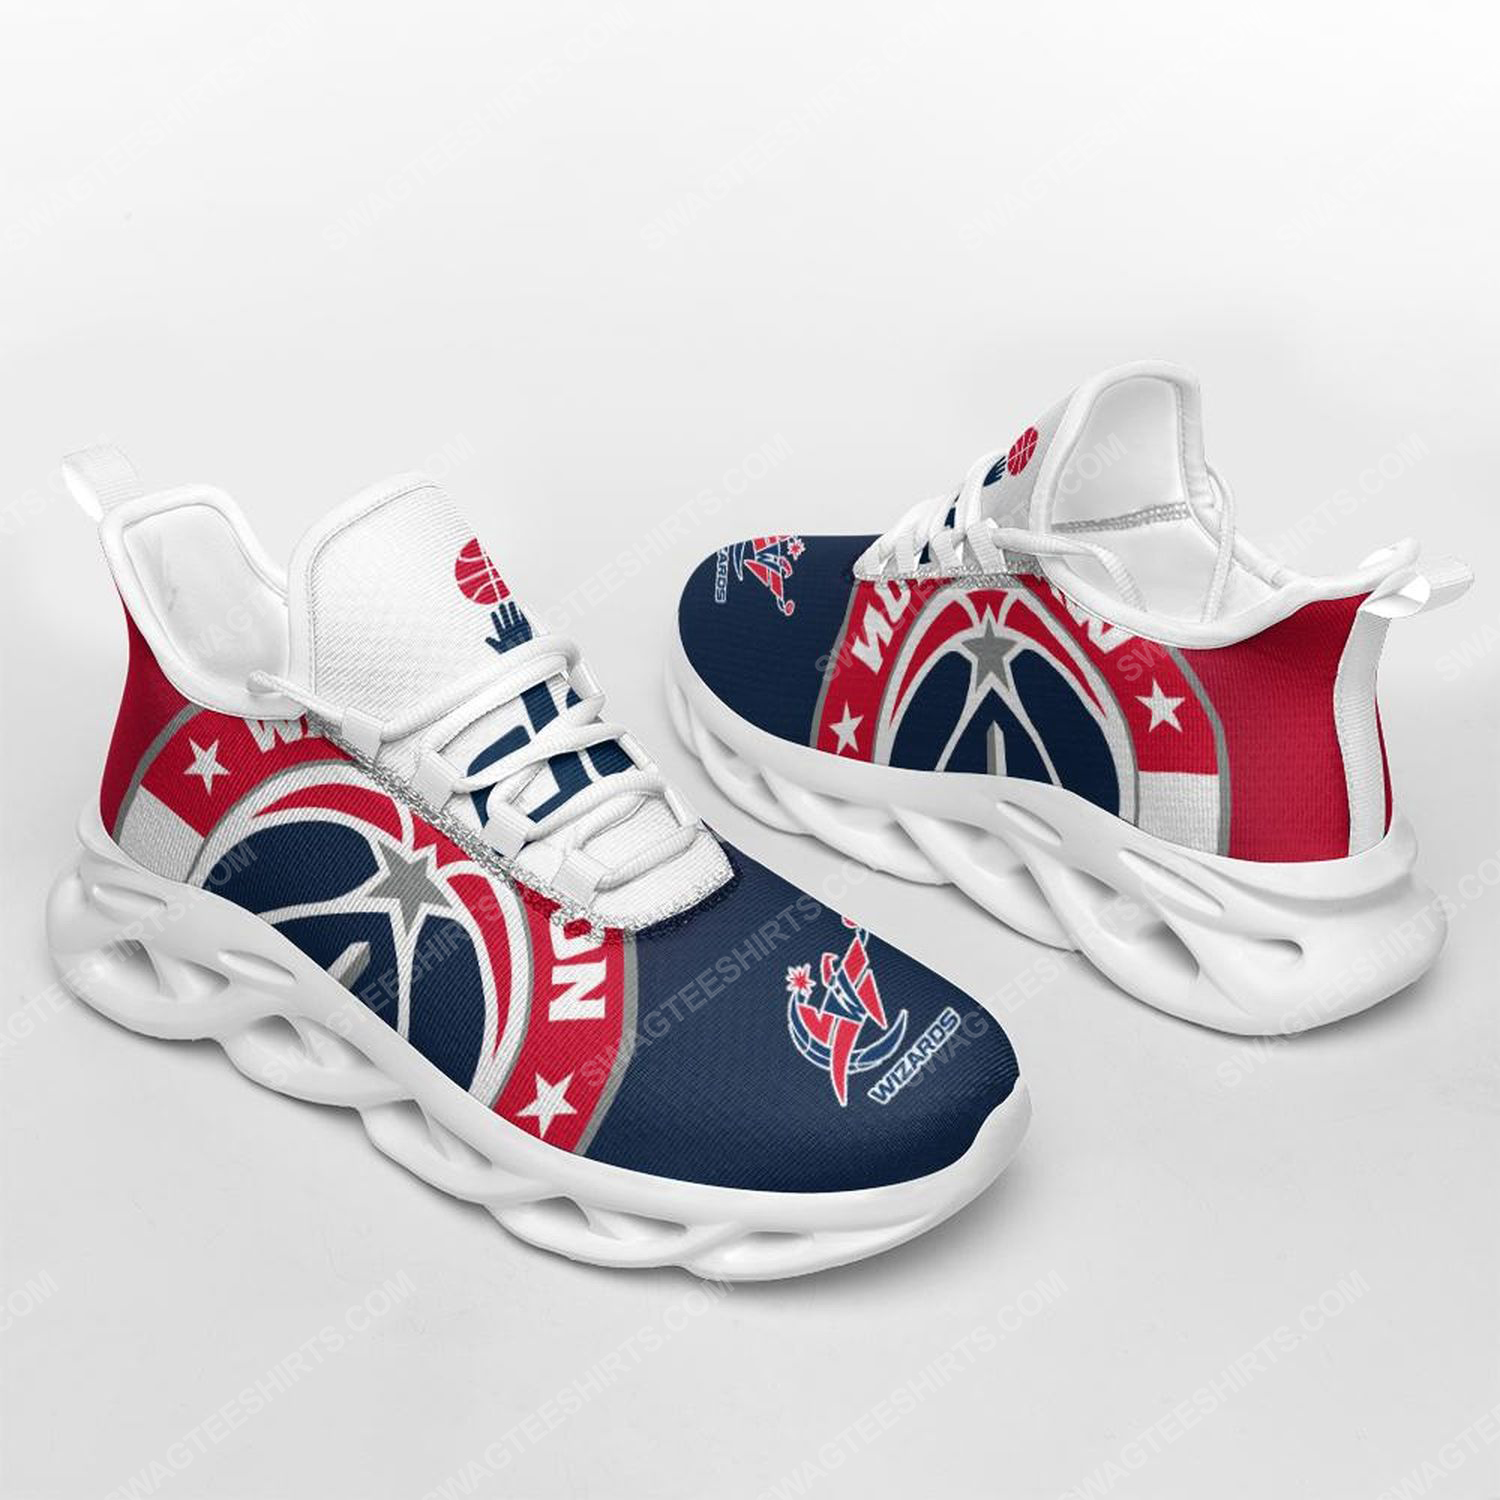 The washington wizards basketball team max soul shoes 1 - Copy (2)